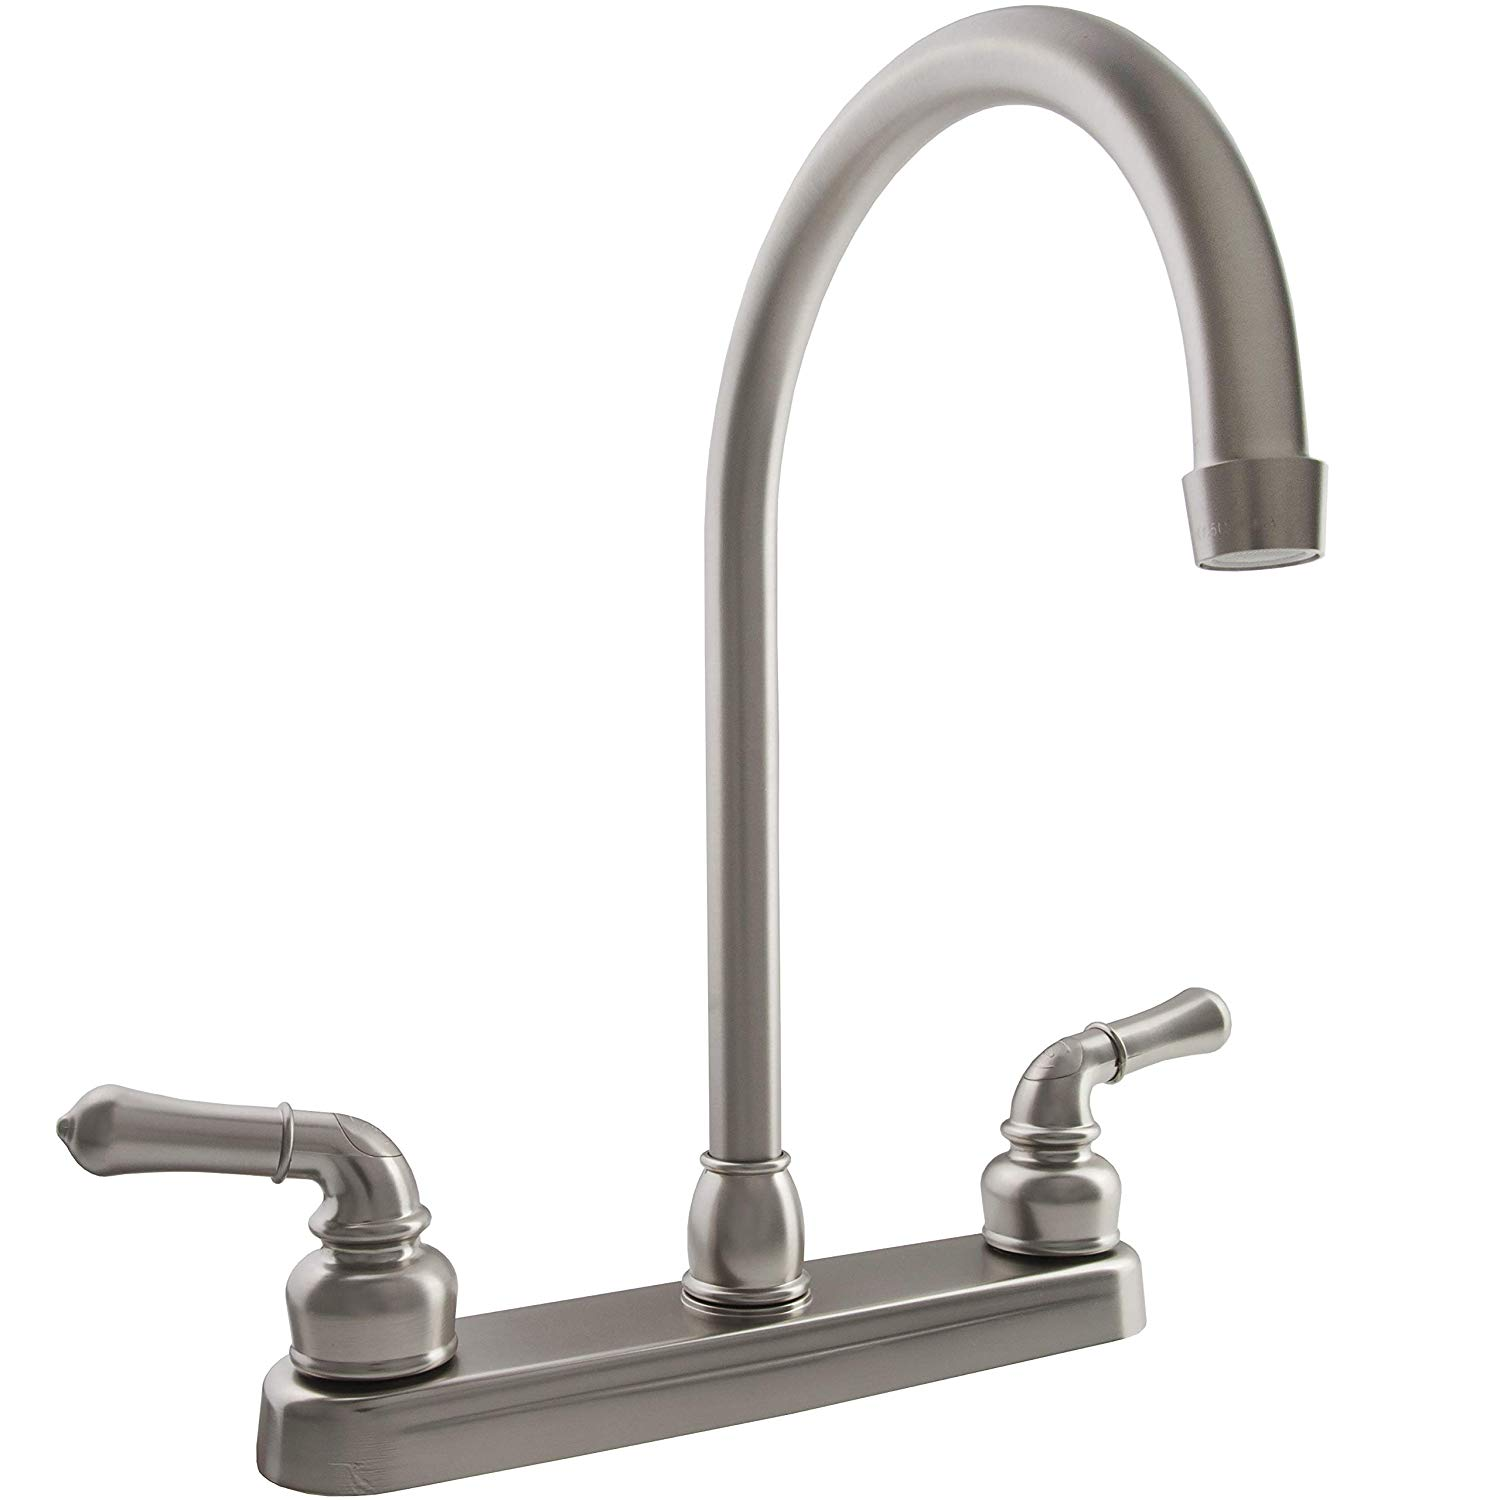 Dura Faucet Kitchen Faucet for RV with J-Spout